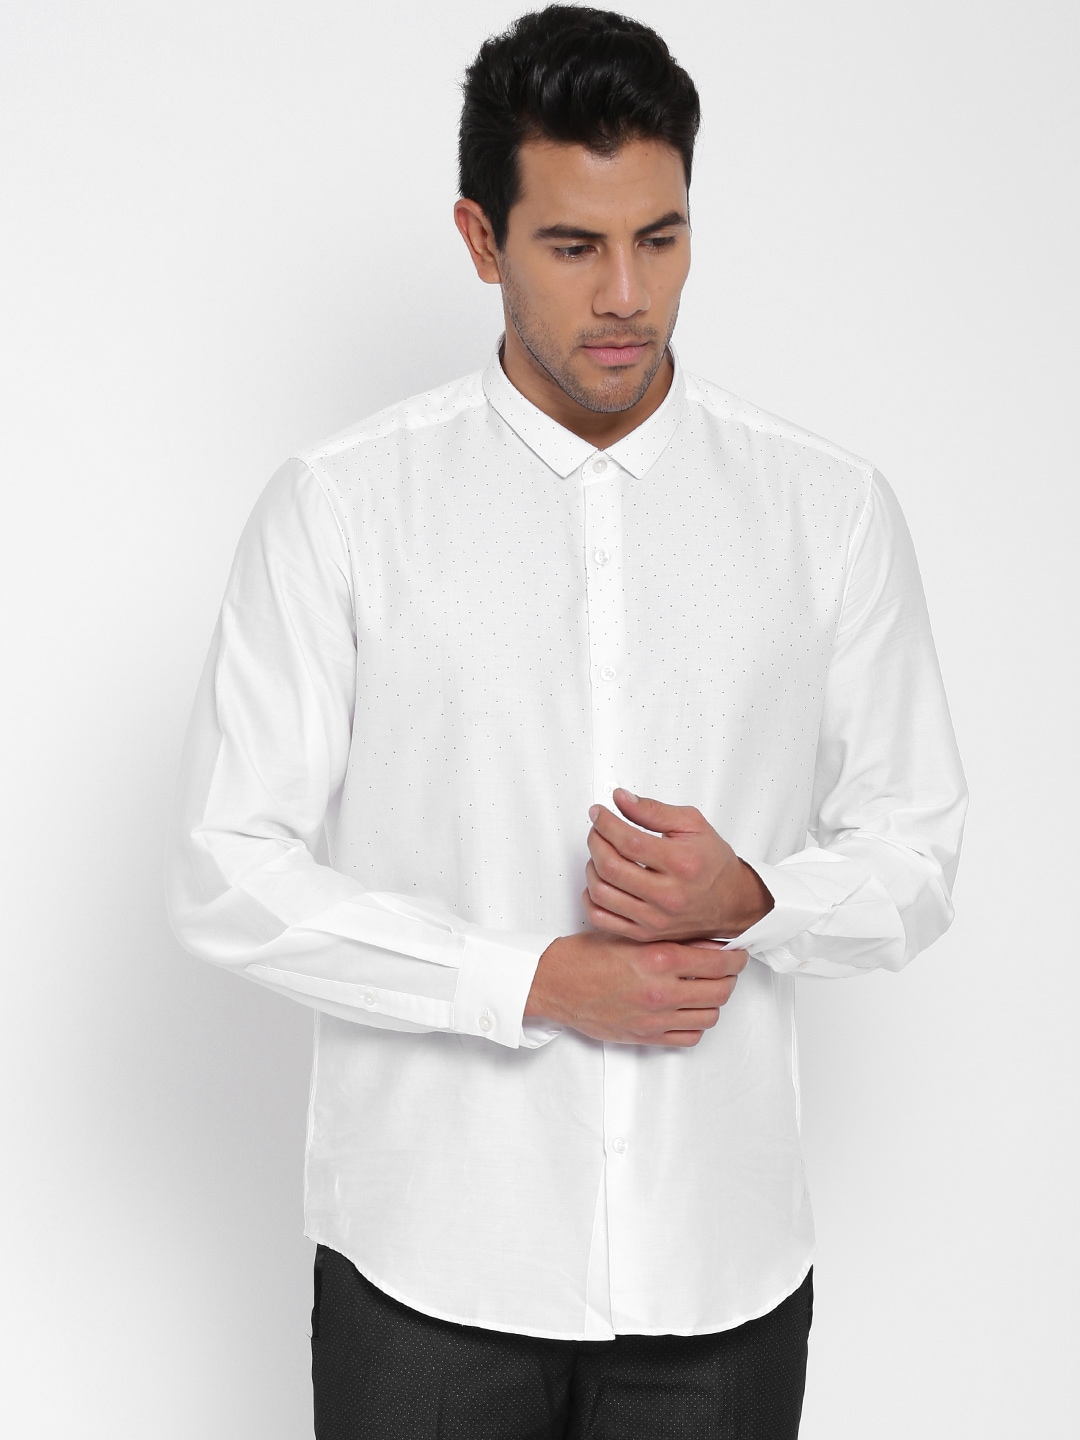 cc6fbf8d7f2 White Party Shirts - Buy White Party Shirts online in India